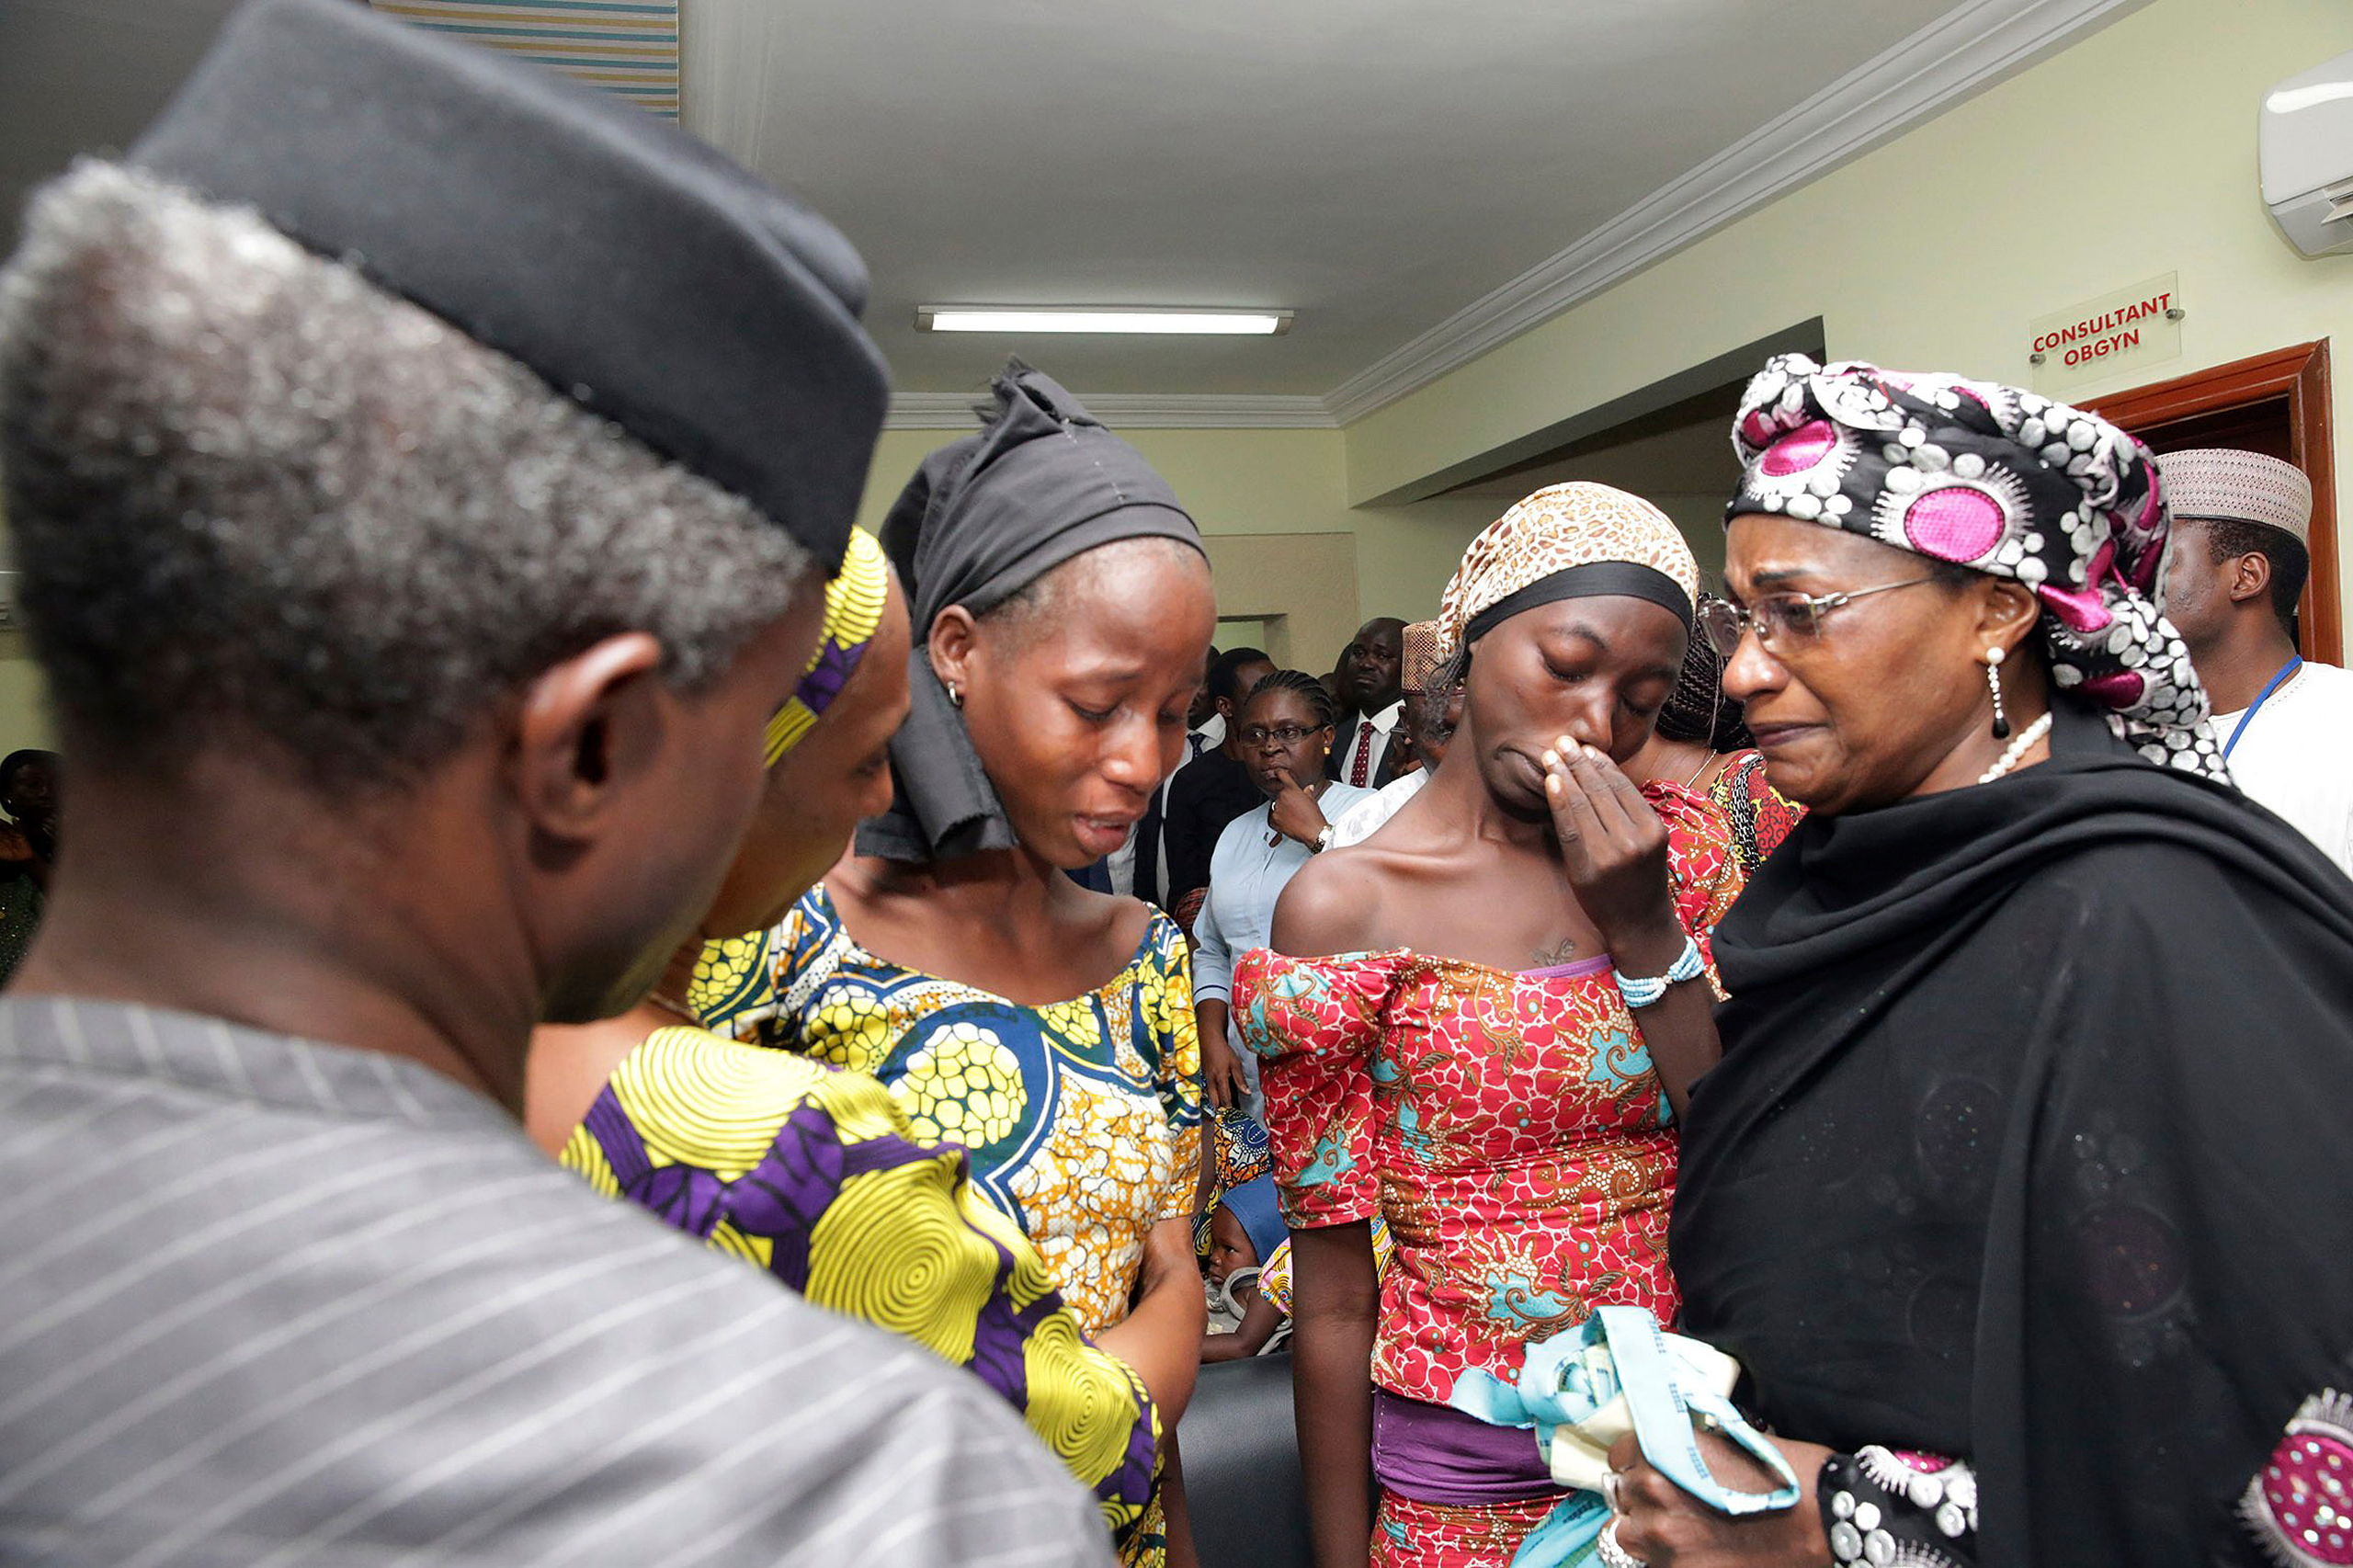 Nigeria's Vice President Yemi Osinbajo, left, welcomes some of the freed Chibok school girls at the state House in Abuja on Oct. 13, 2016. T